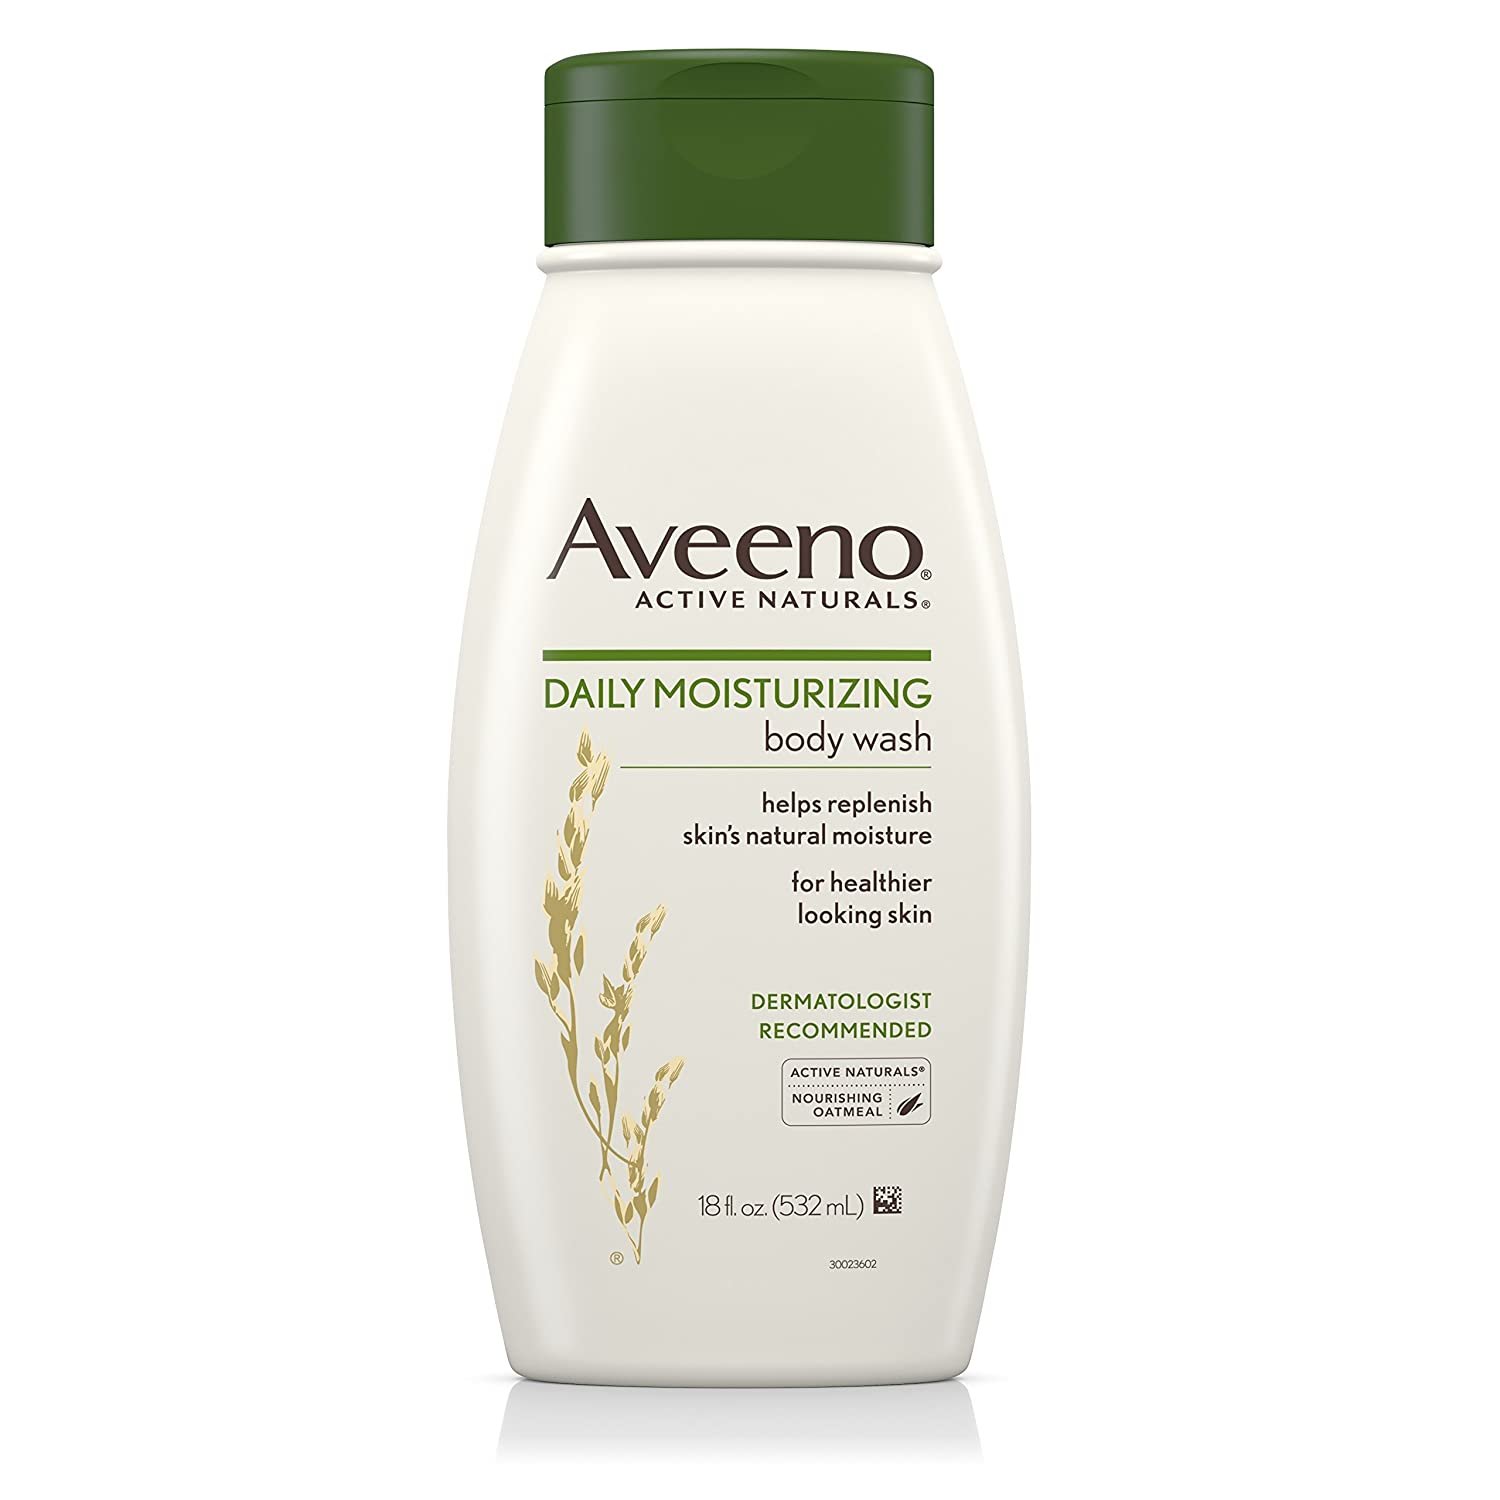 Aveeno Daily Moisturizing Body Wash: